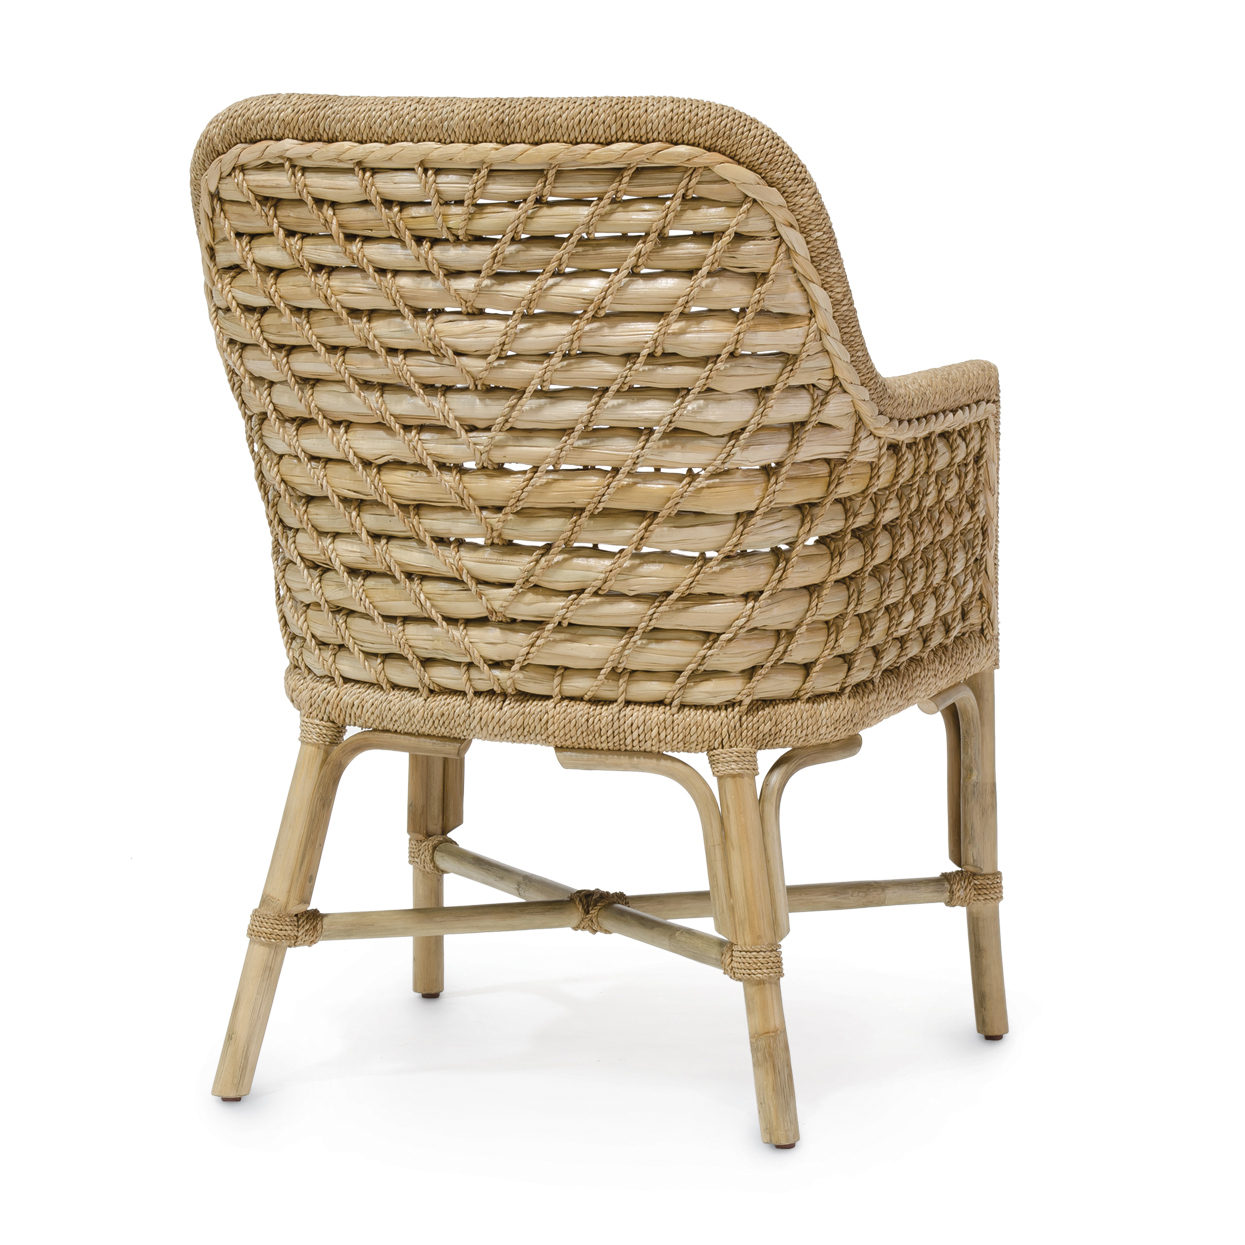 seagrass arm chair outdoor dream woven back mecox gardens